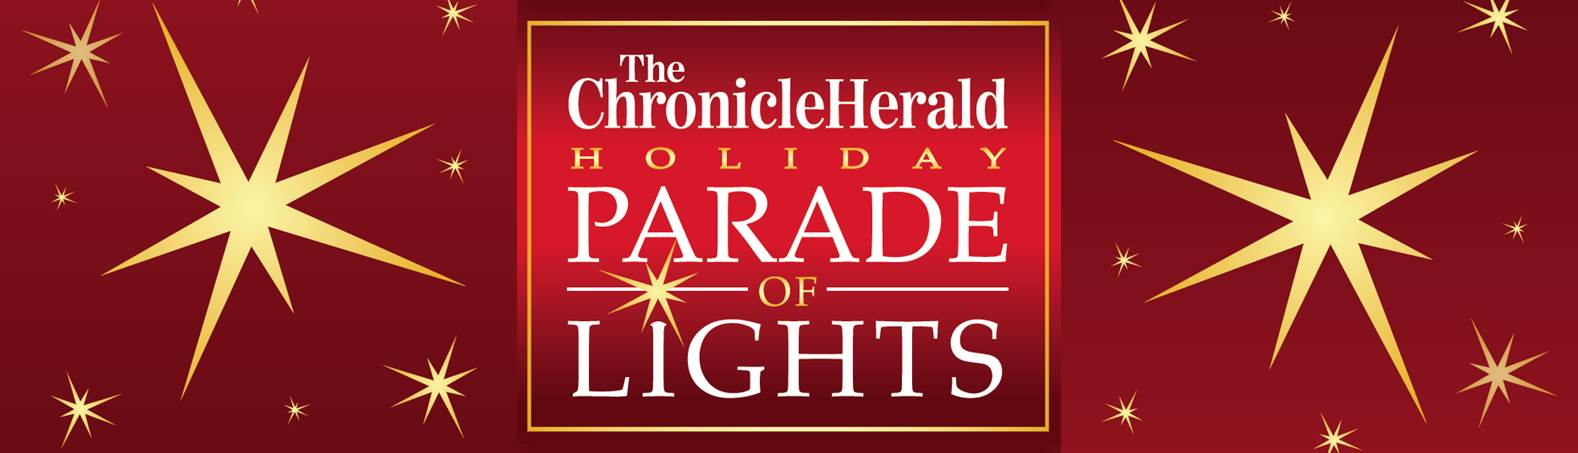 Holiday Parade of Lights Society Logo